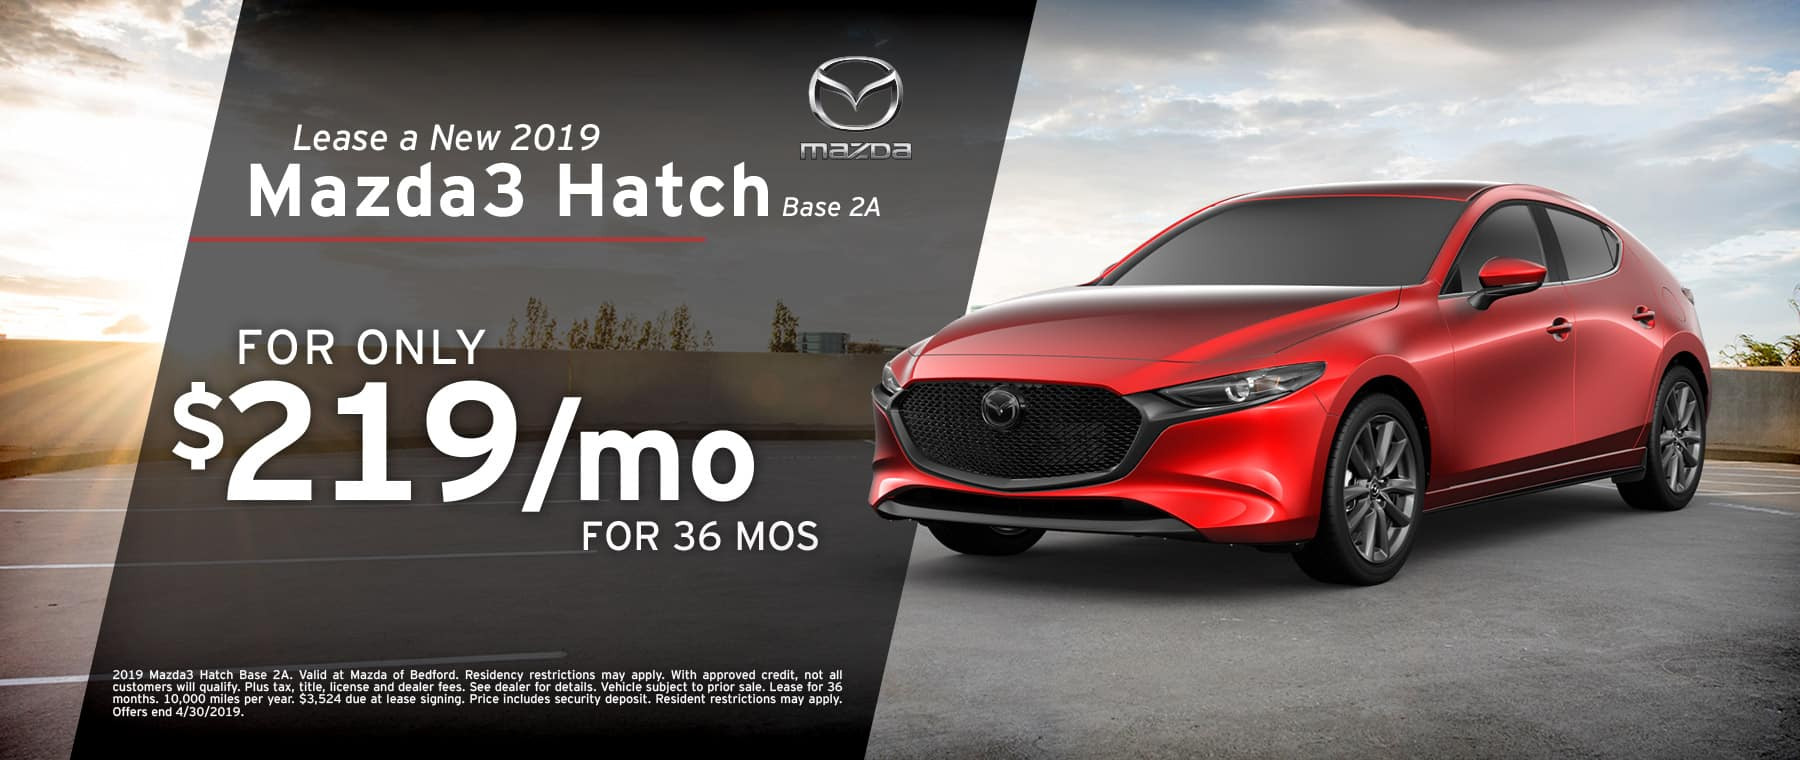 Save when you lease a 2019 Mazda3 Hatch at Mazda of Bedford